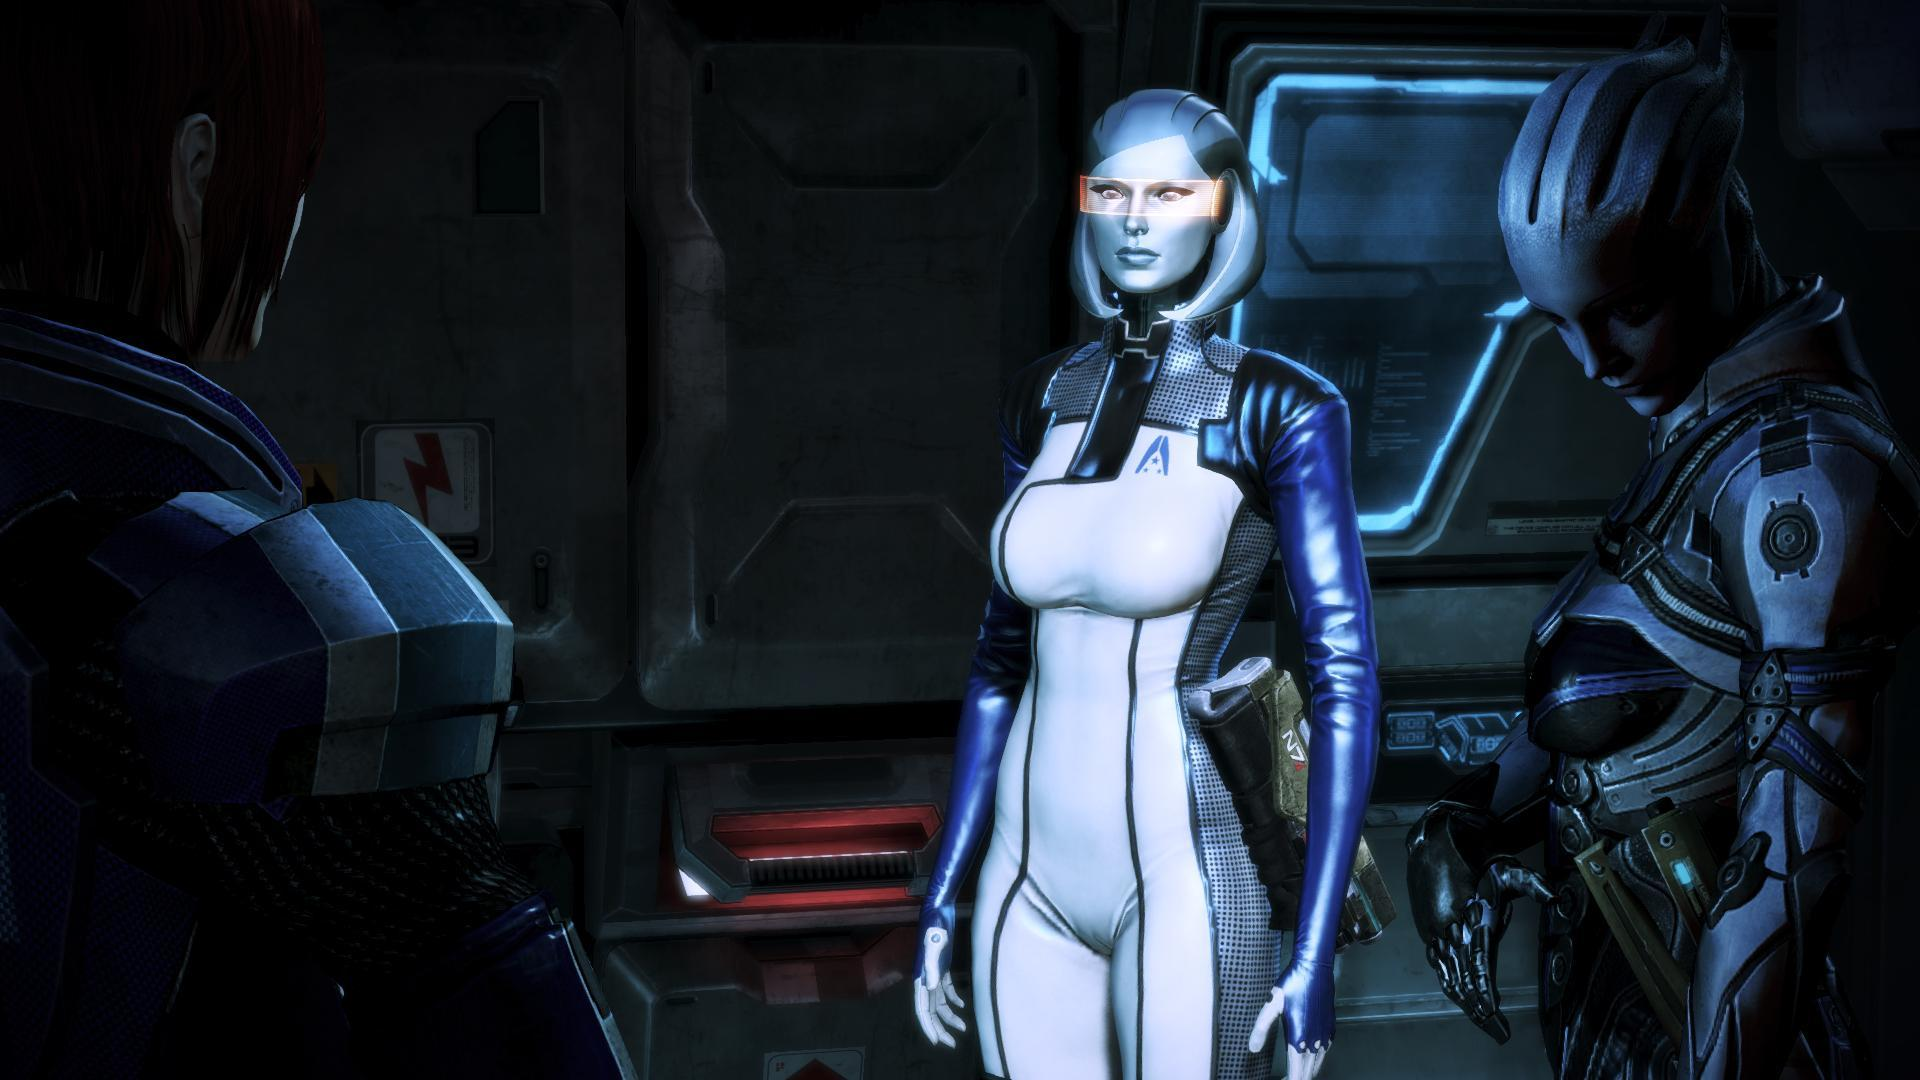 Stripteas mod mass effect anime pic